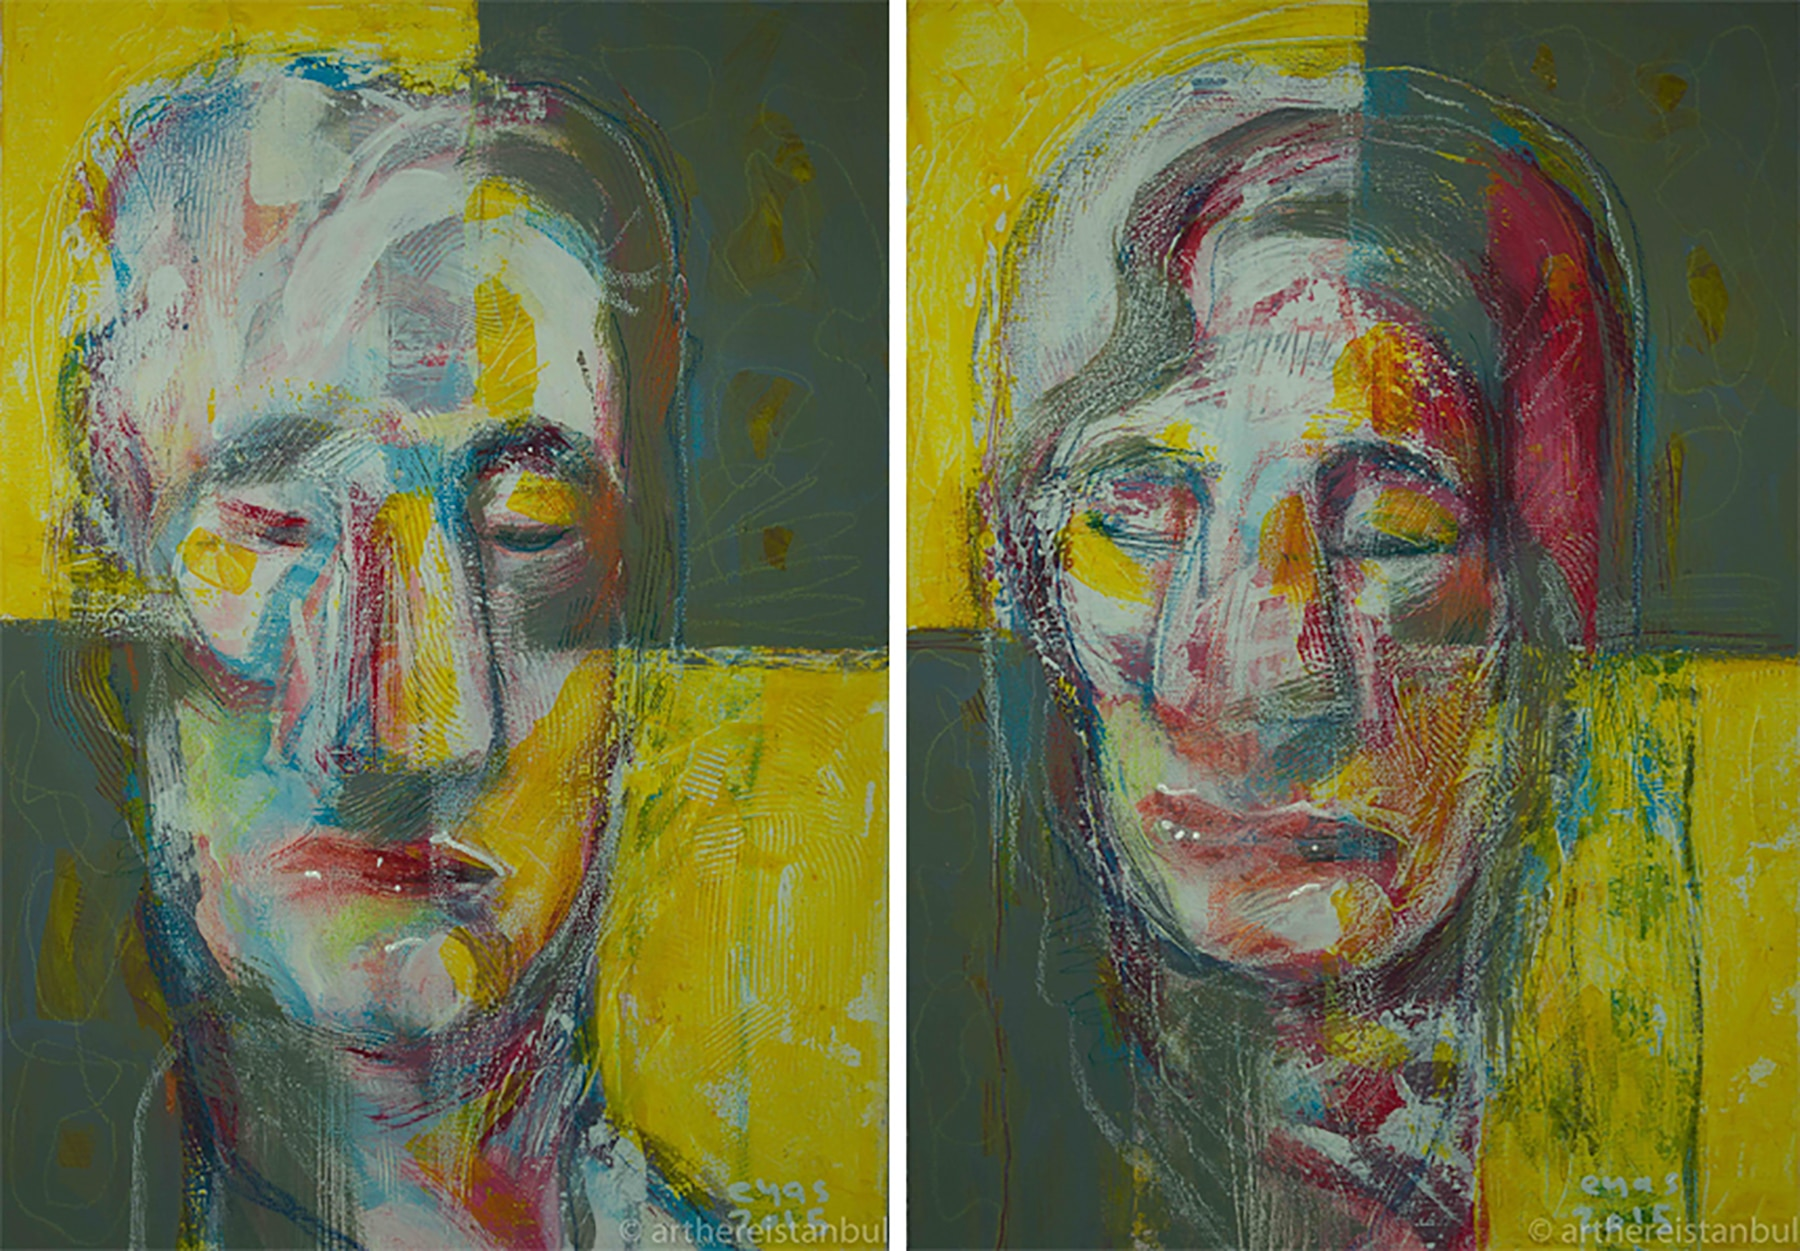 Painting of man's face and woman's face (© Eyas Jaafar)